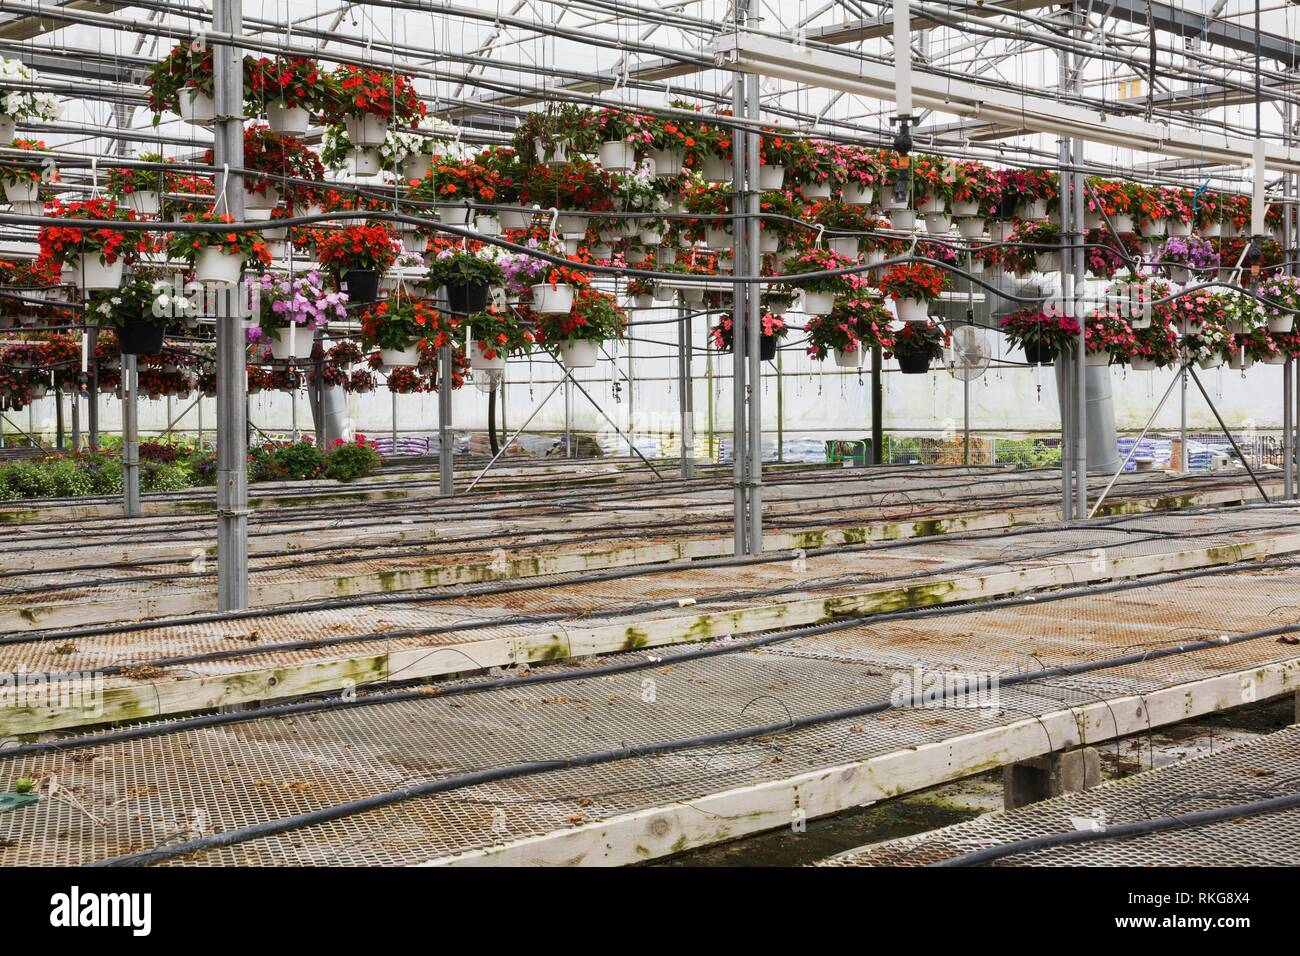 Hanging baskets of red and pink Impatiens - Balsam flowers and empty wire mesh tables inside a steel framed and plastic sheeting commercial - Stock Image